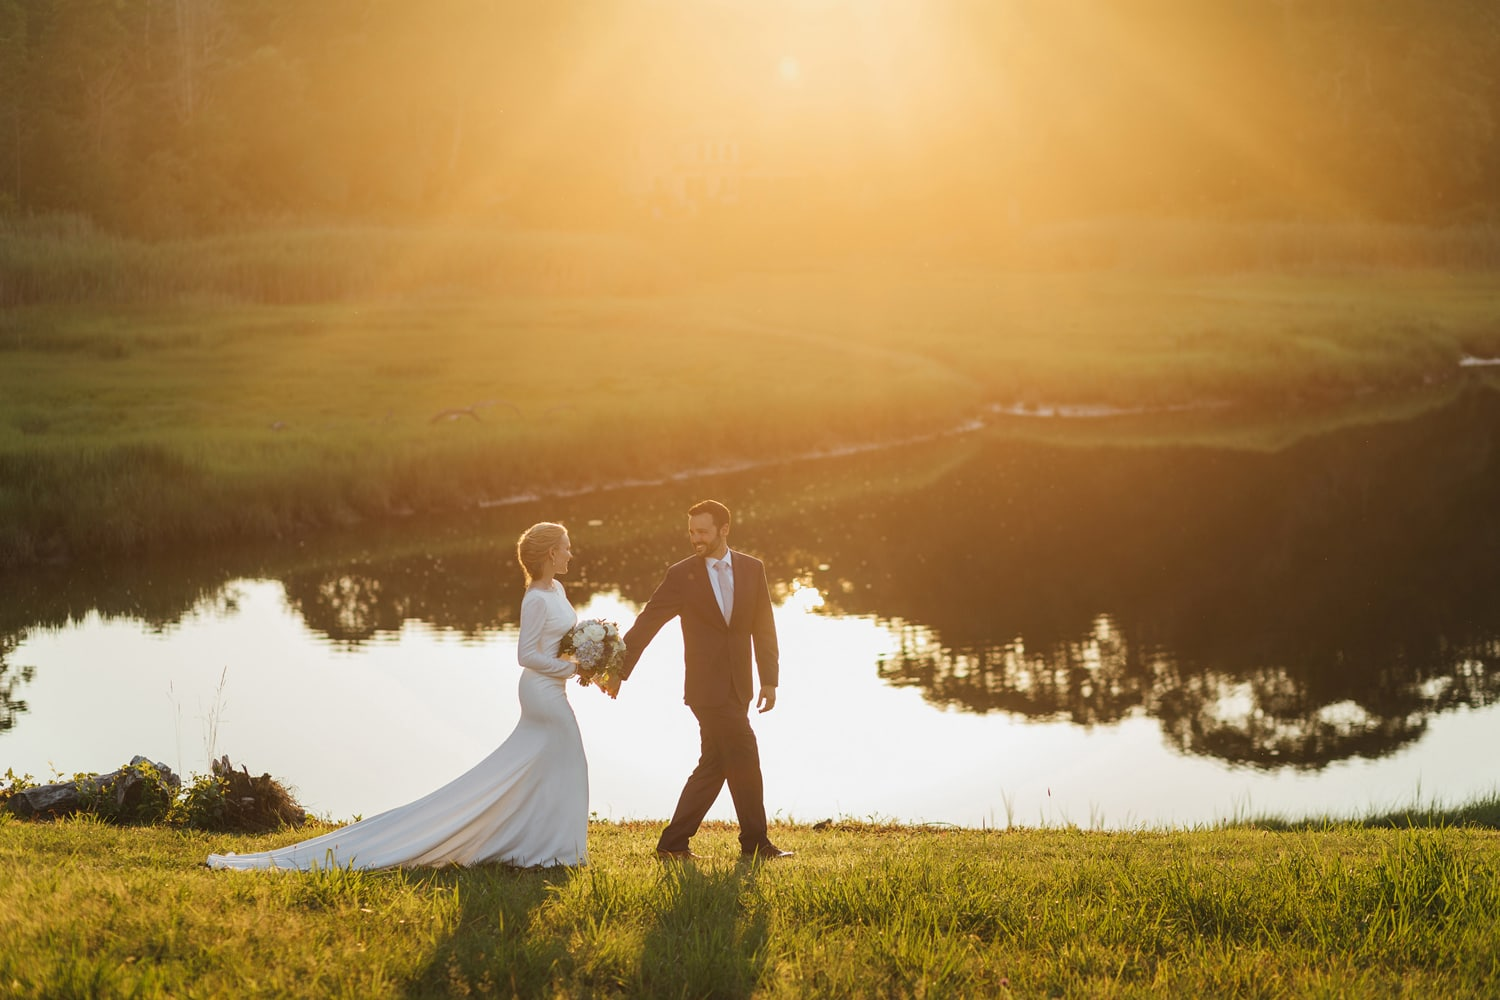 Bride and groom walking near the water at sunset